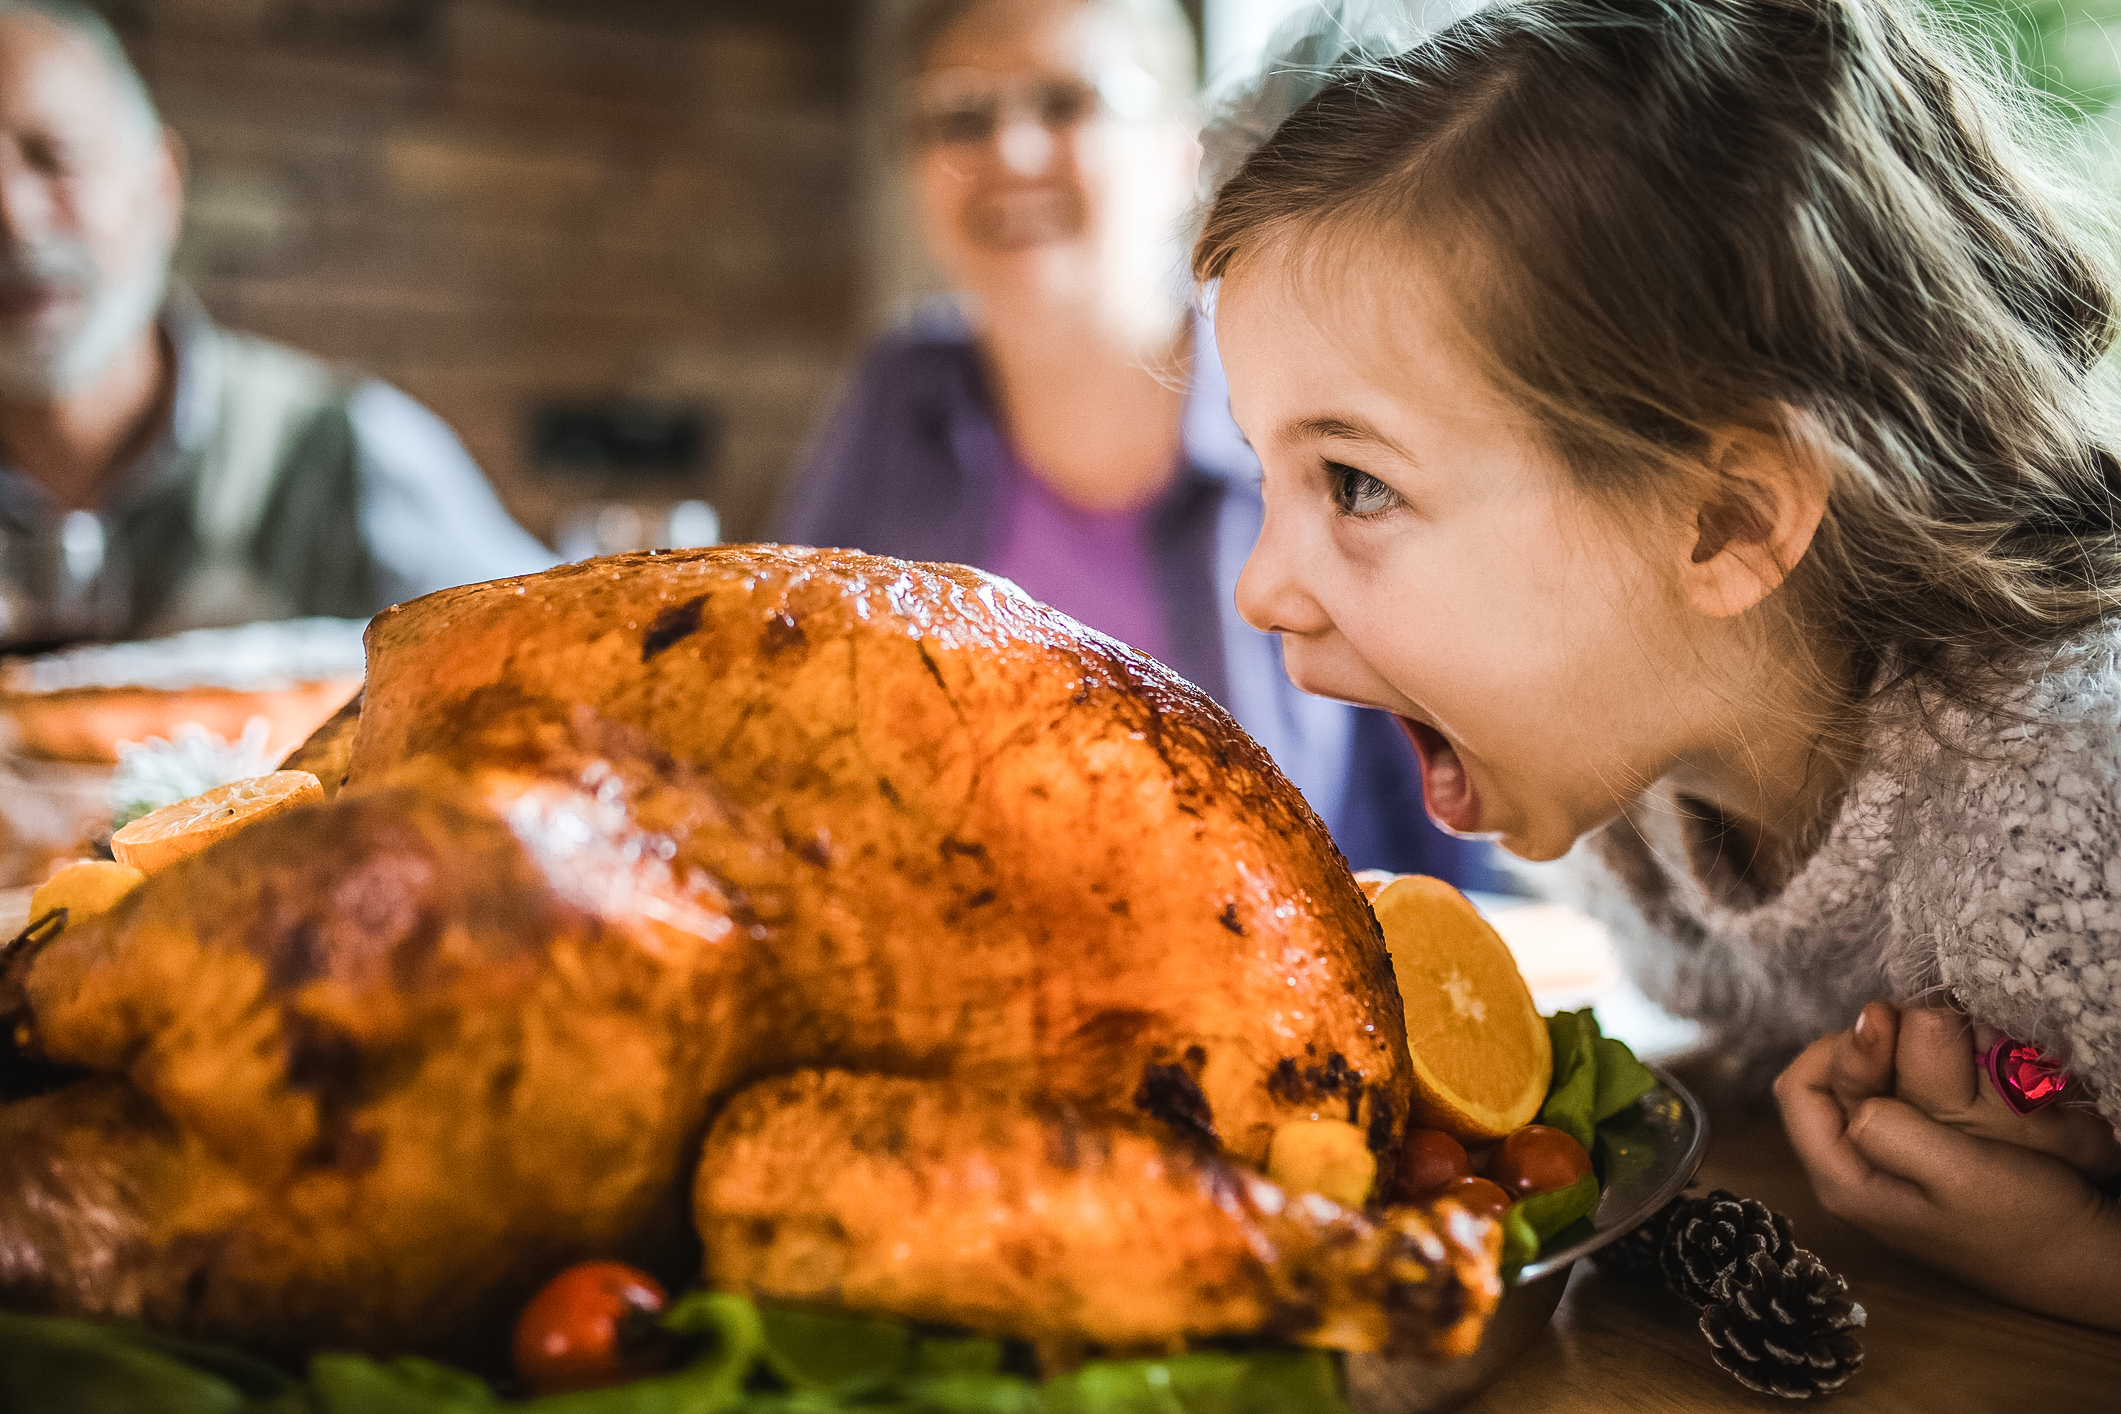 Cute little girl having fun while about to bite a stuffed turkey during Thanksgiving dinner in dining room.